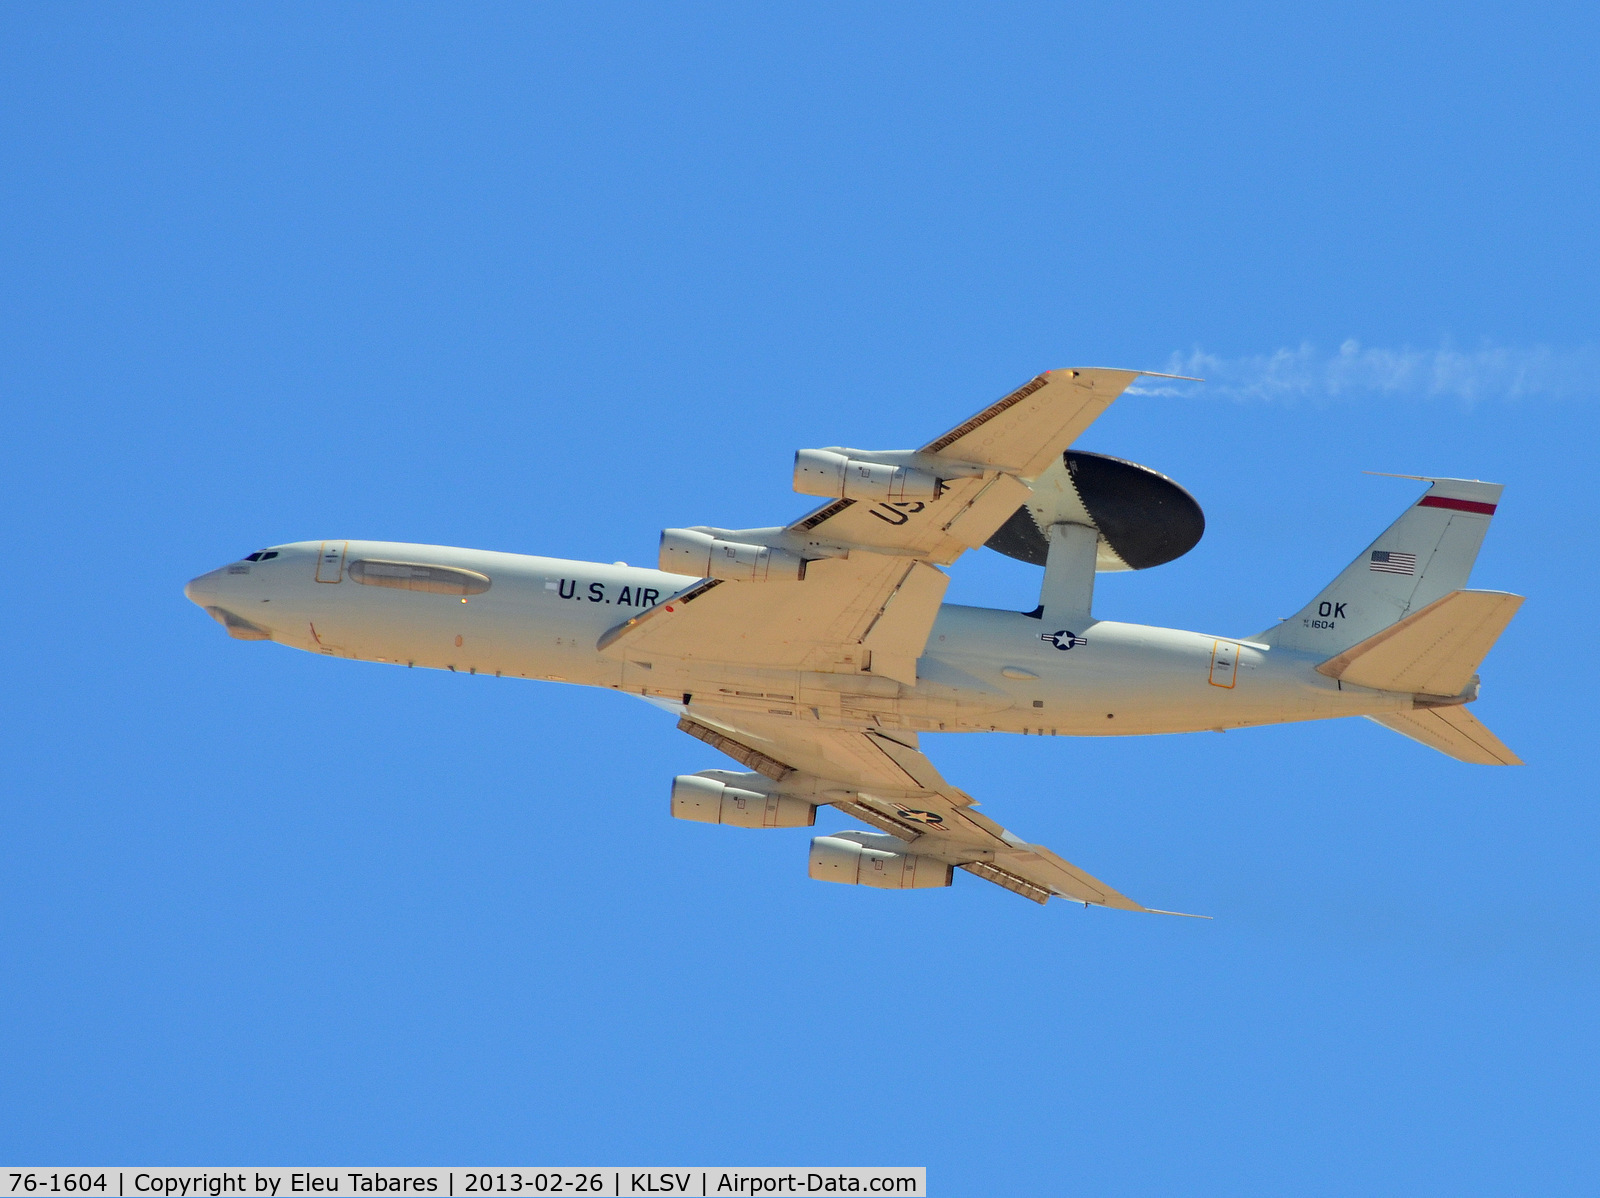 76-1604, 1976 Boeing E-3B Sentry C/N 21434, Taken during Red Flag Exercise at Nellis Air Force Base, Nevada.